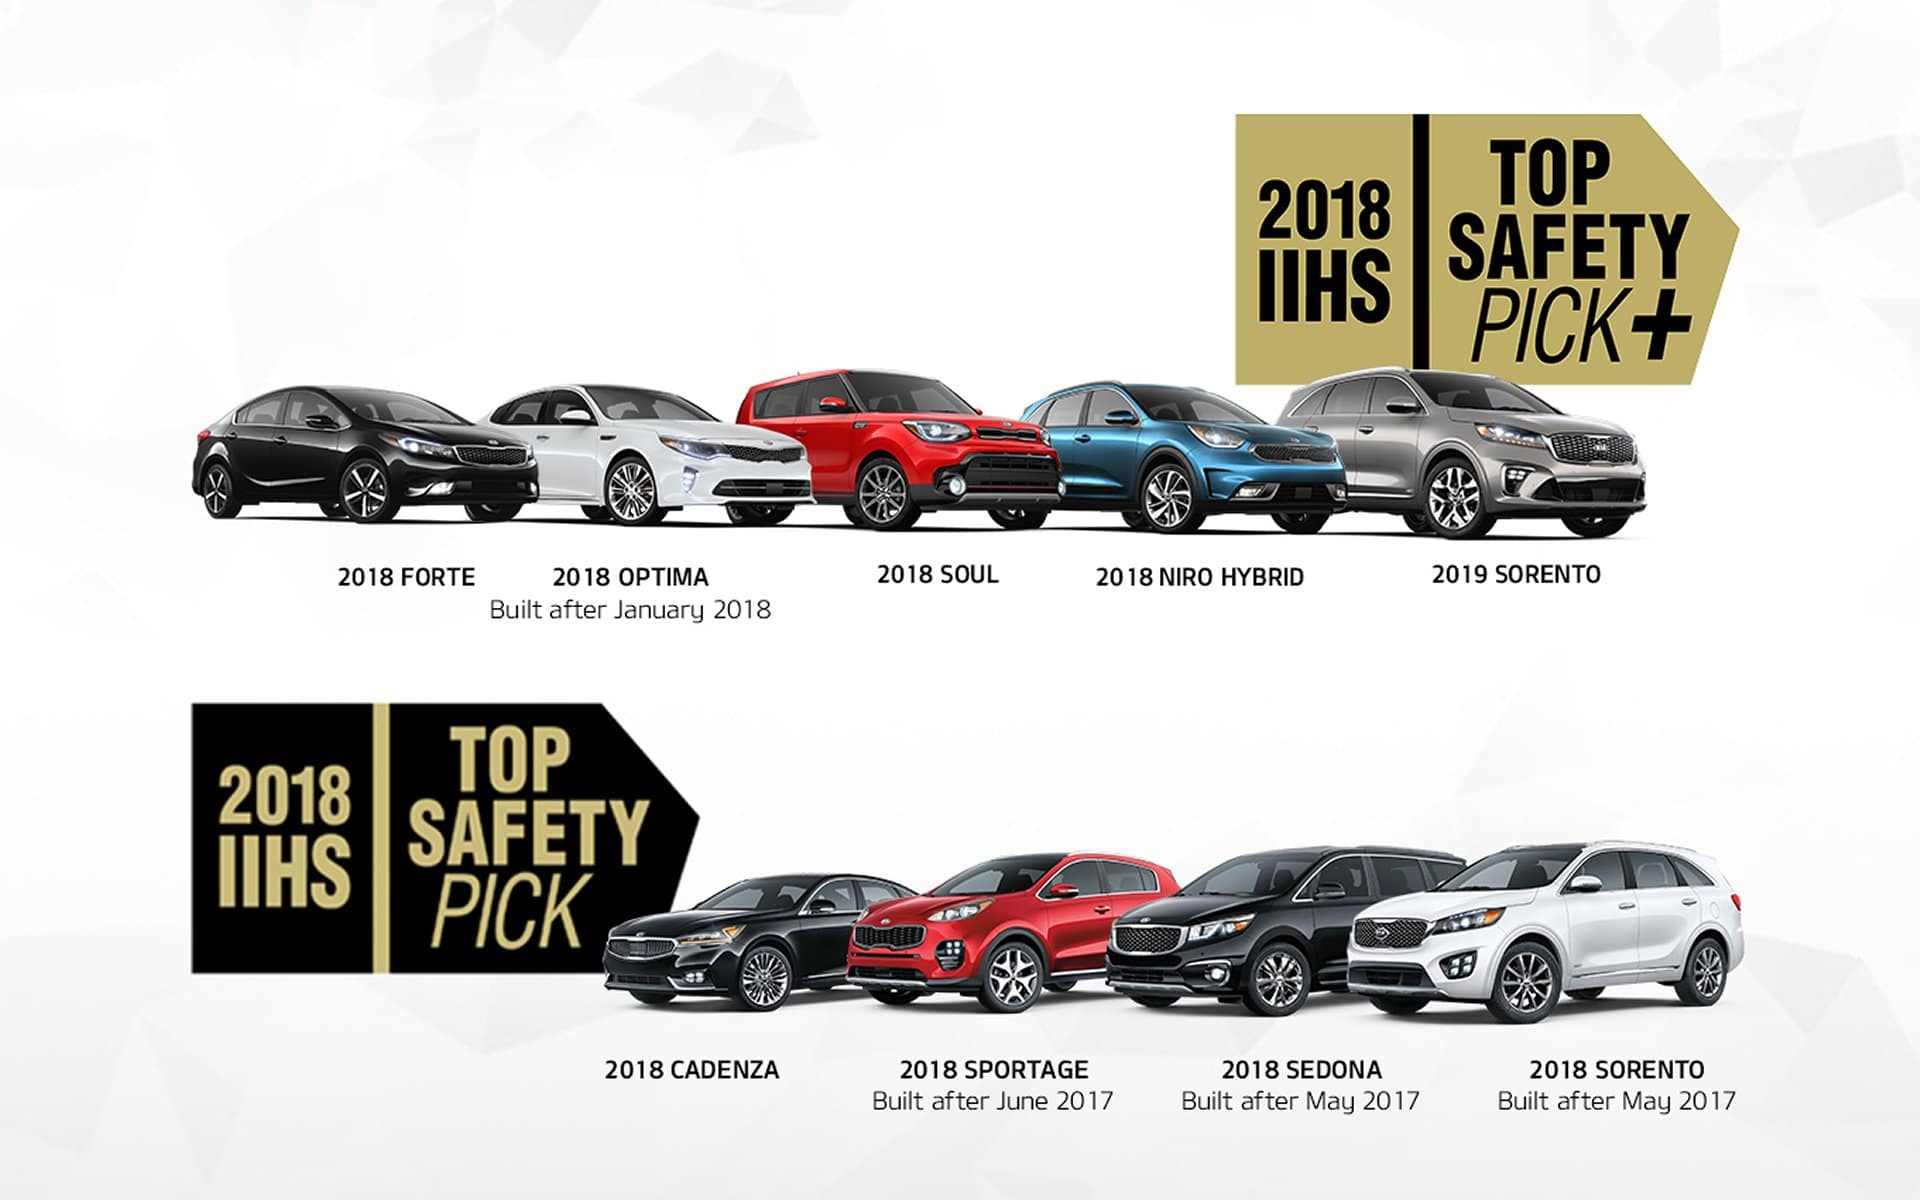 Kia IIHS Top Safety Pick Winners